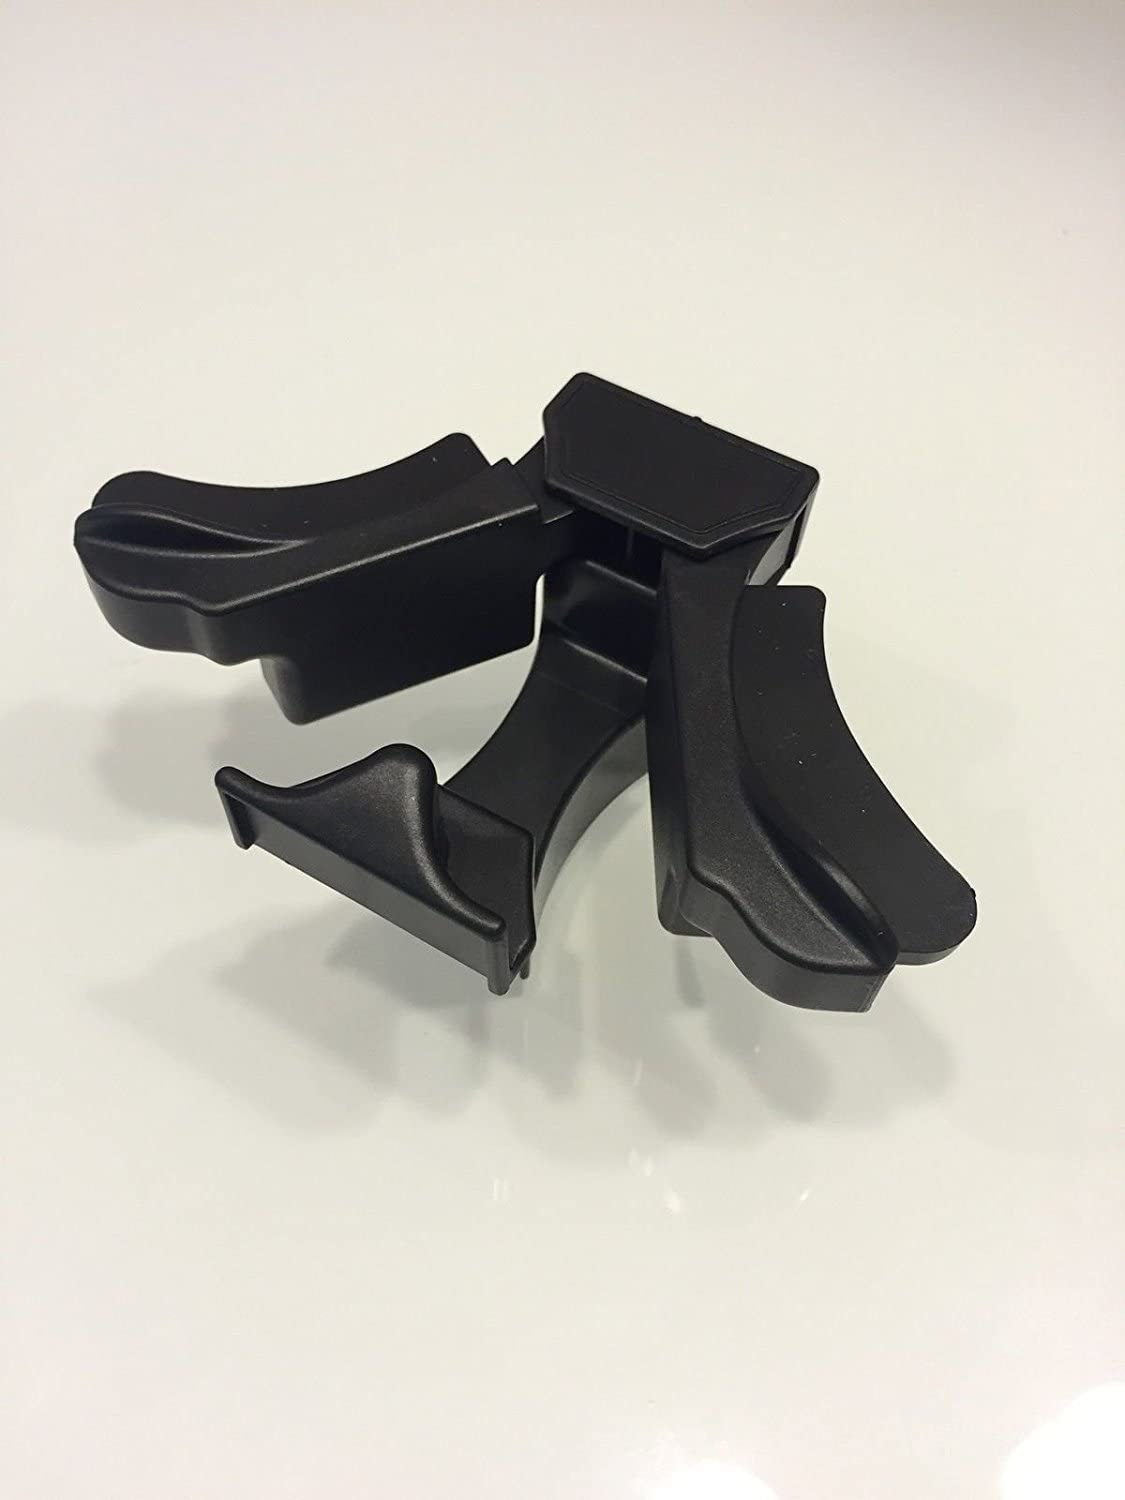 Trunknets Inc Center Console Cup Holder Insert Divider for Lexus LX470 LX 470 2000 01 02 03 04 05 06 2007